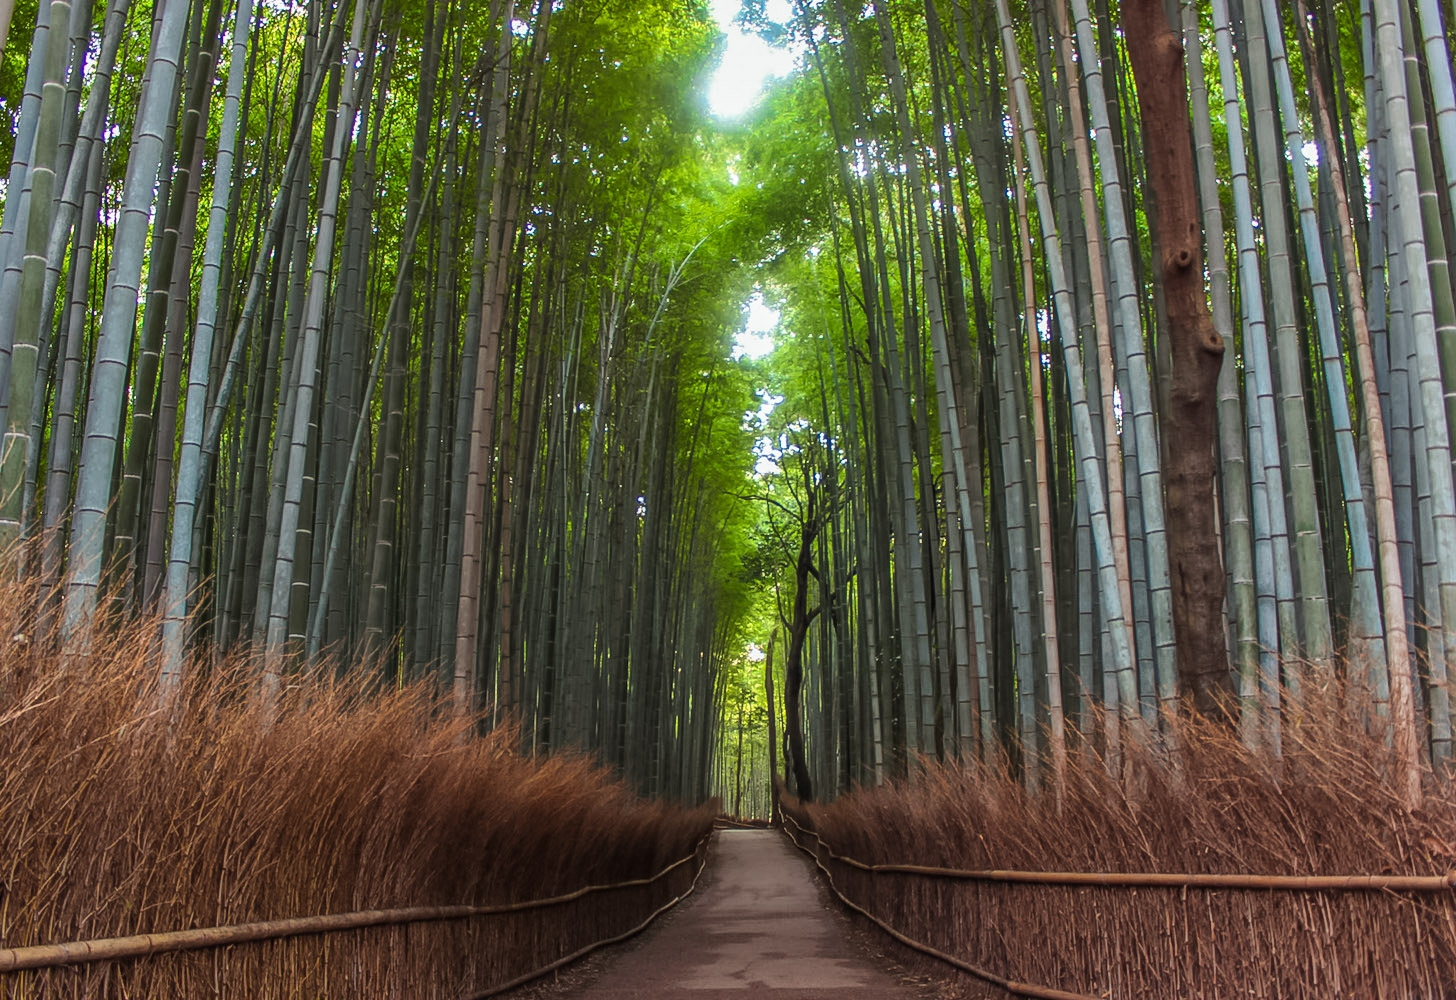 curio.trips.japan.kyoto.bamboo.grove.landscape.jpg